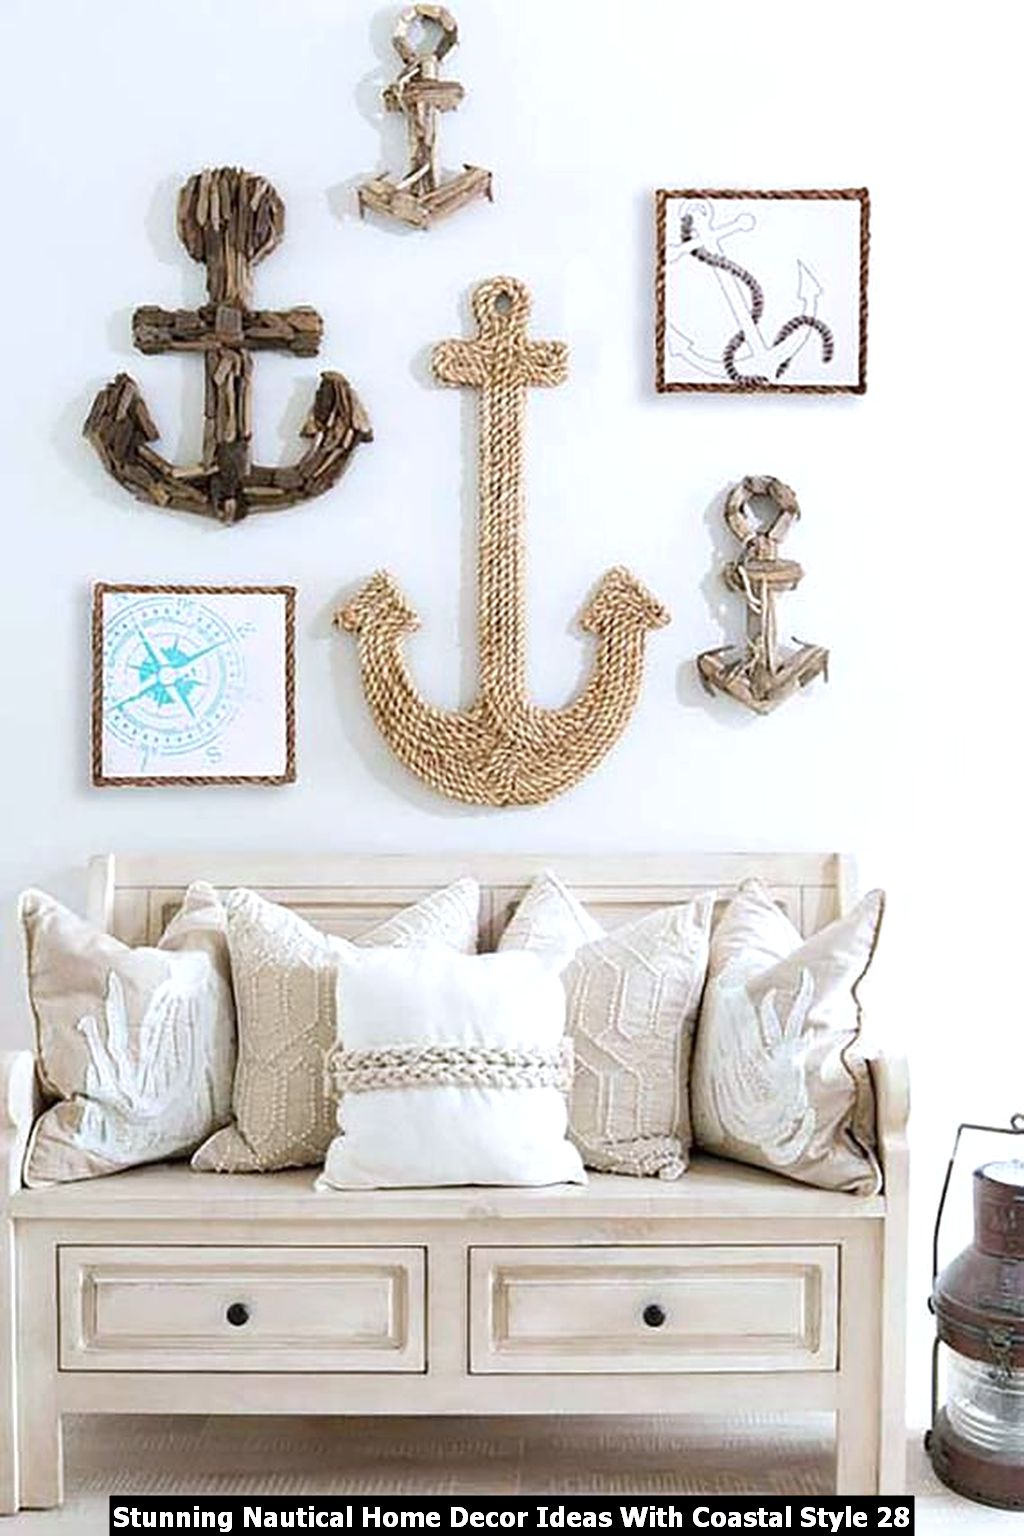 Stunning Nautical Home Decor Ideas With Coastal Style 28